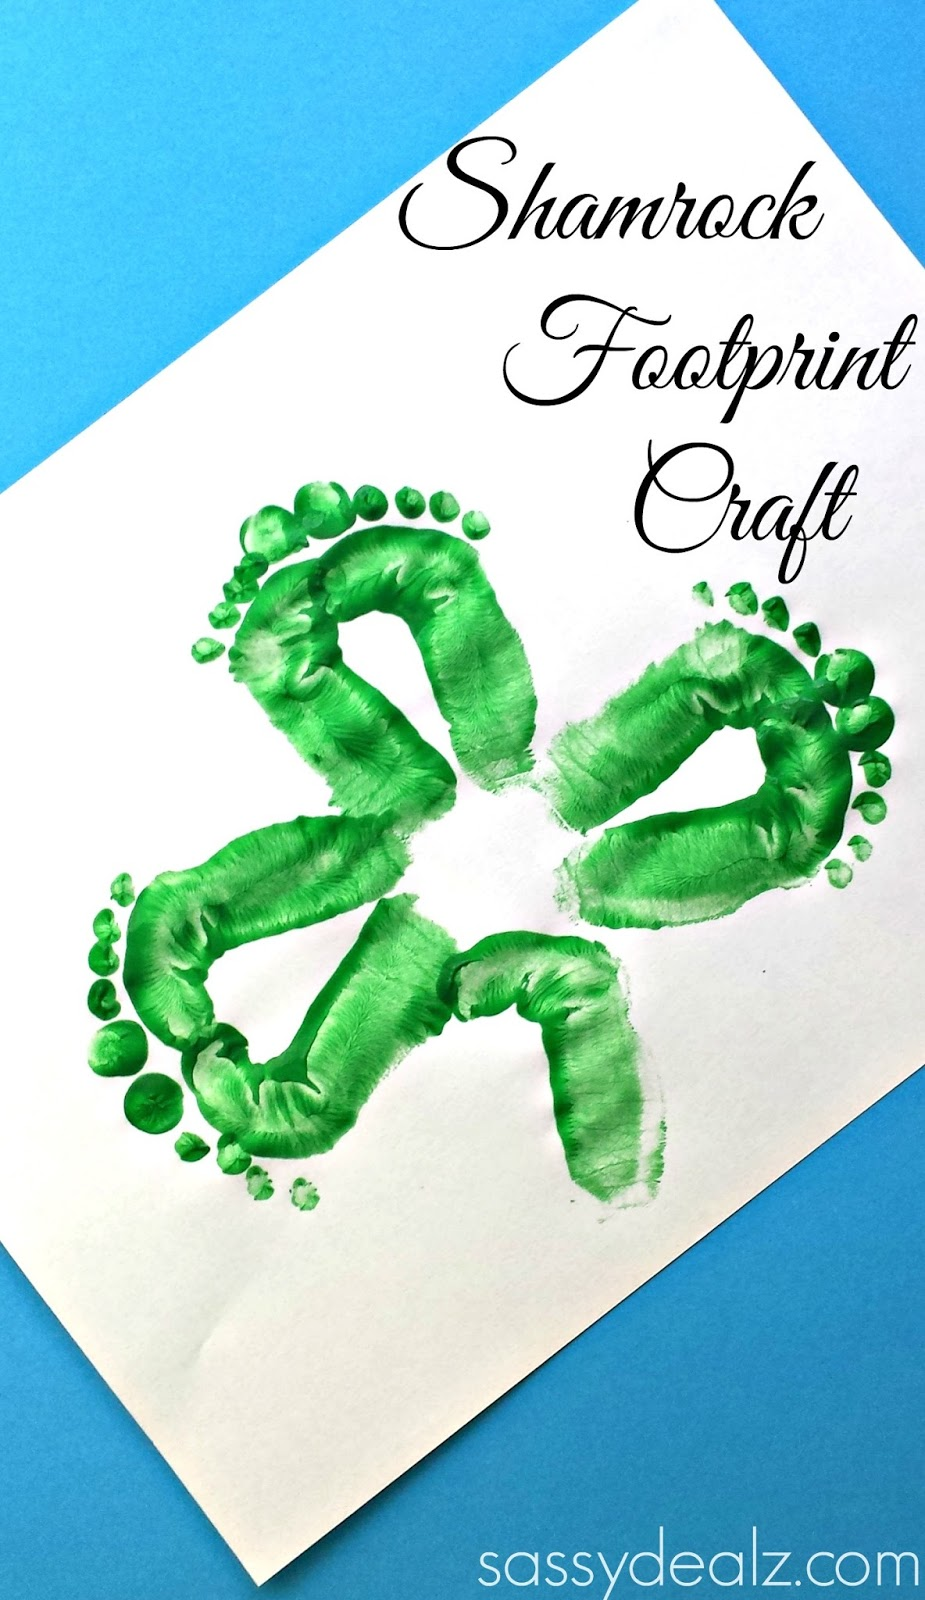 http://www.sassydealz.com/2014/02/kids-shamrock-footprint-craft-st-patricks-day.html